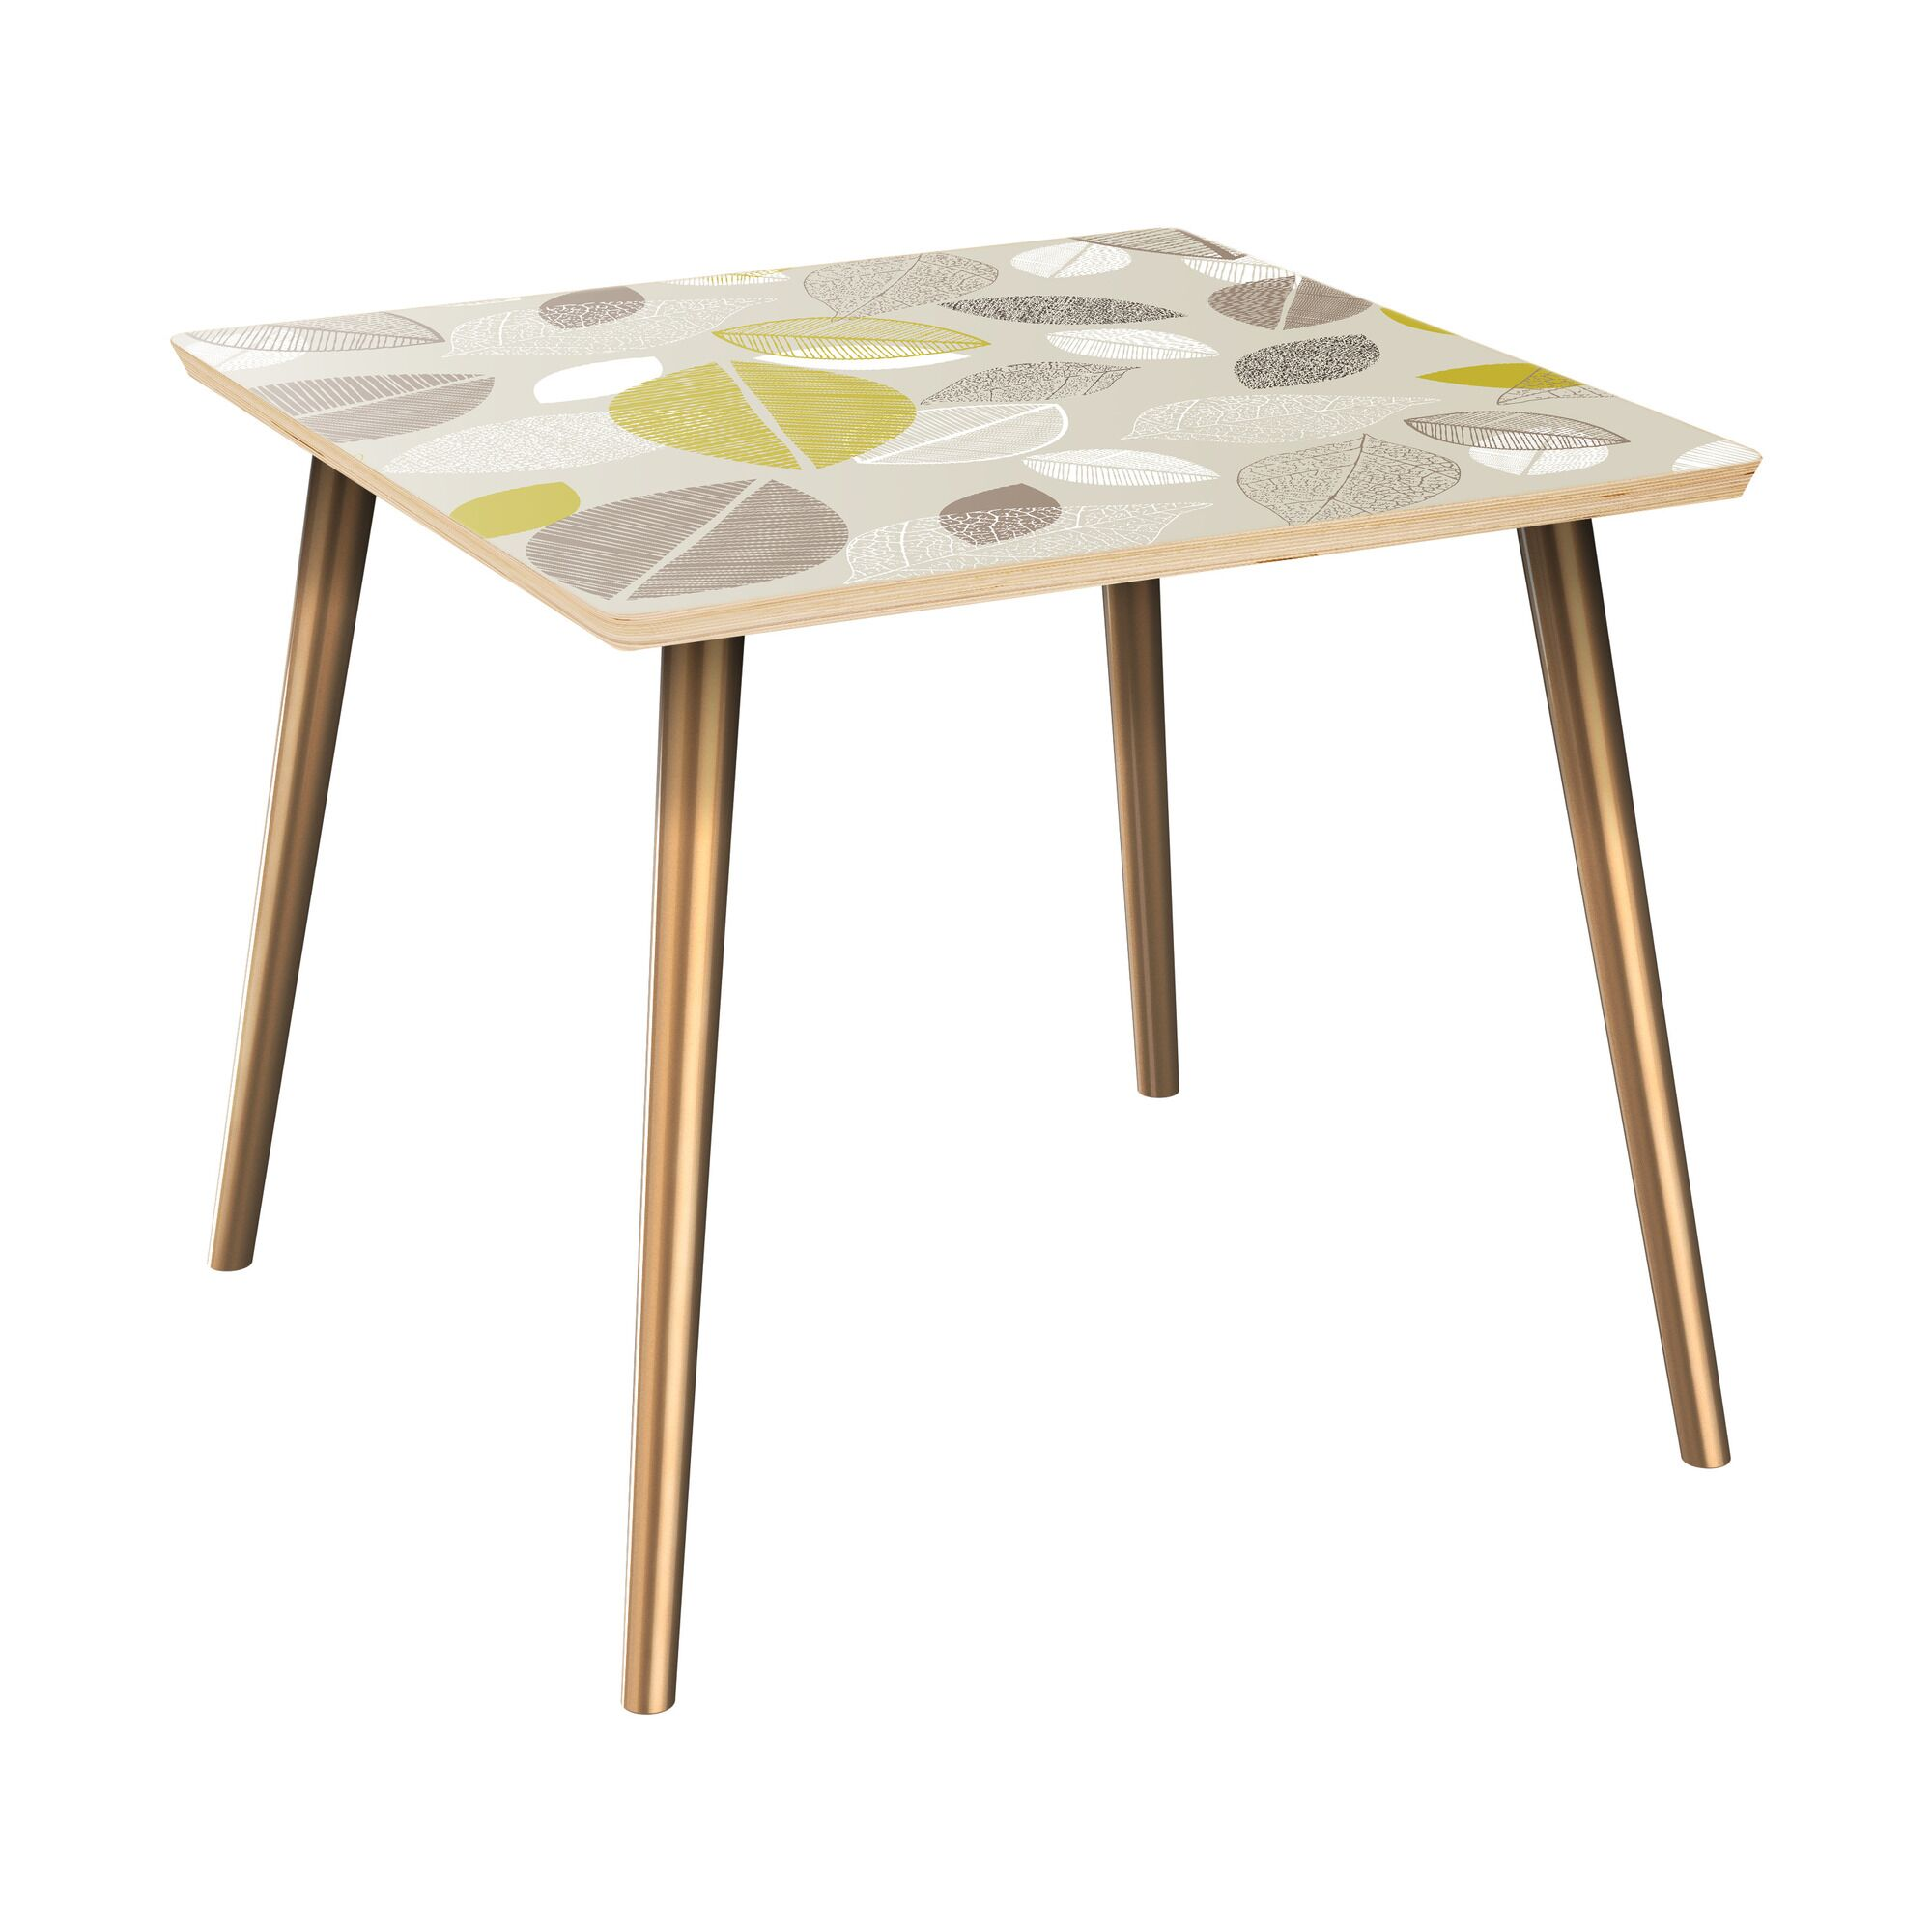 Scharff End Table Table Top Boarder Color: Natural, Table Base Color: Brass, Table Top Color: Blue